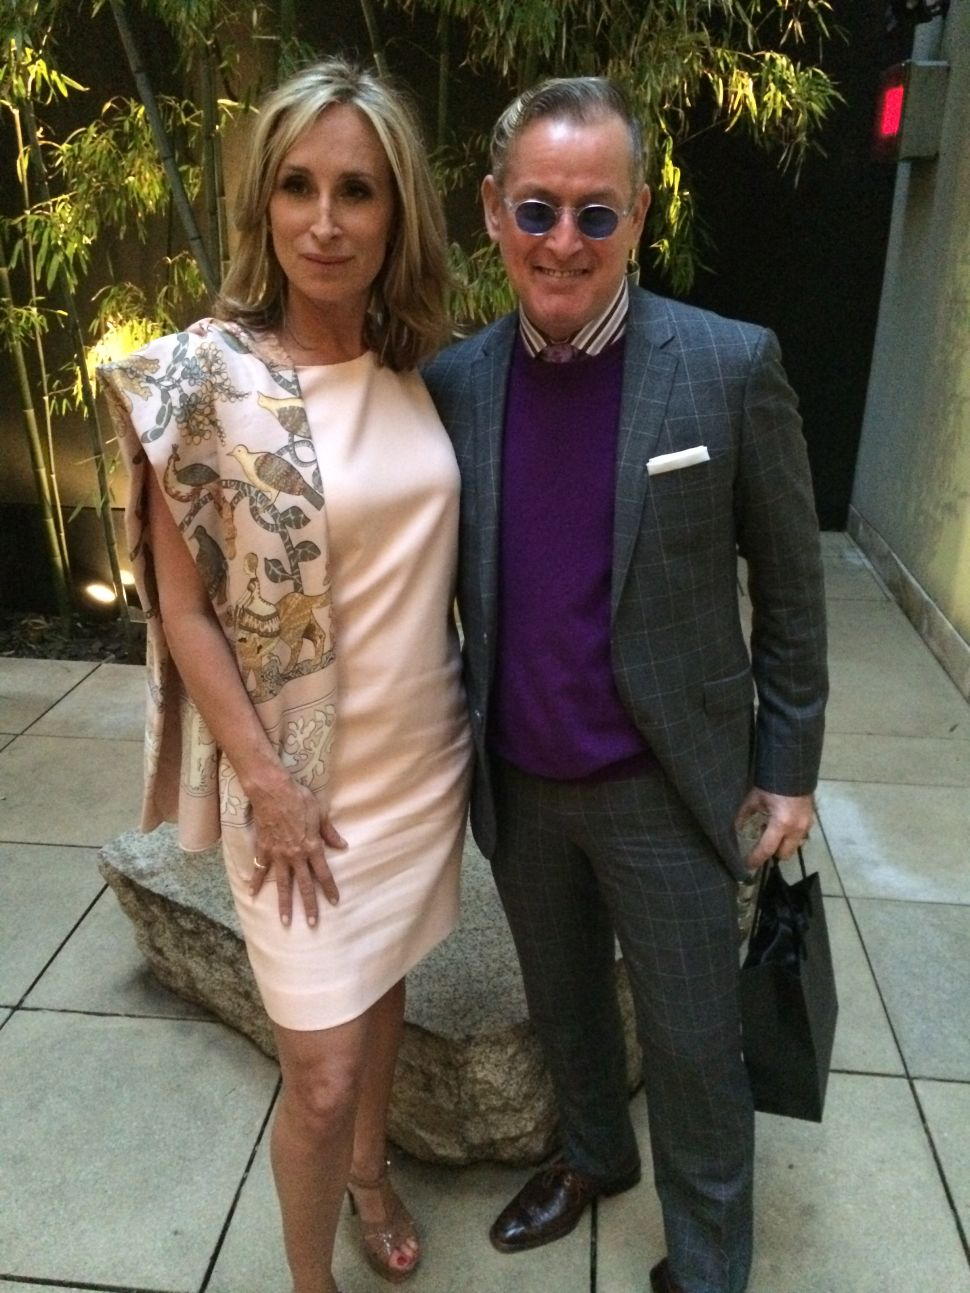 Caburlesque or Cooking? 10 Minutes With 'Real Housewife' Sonja Morgan